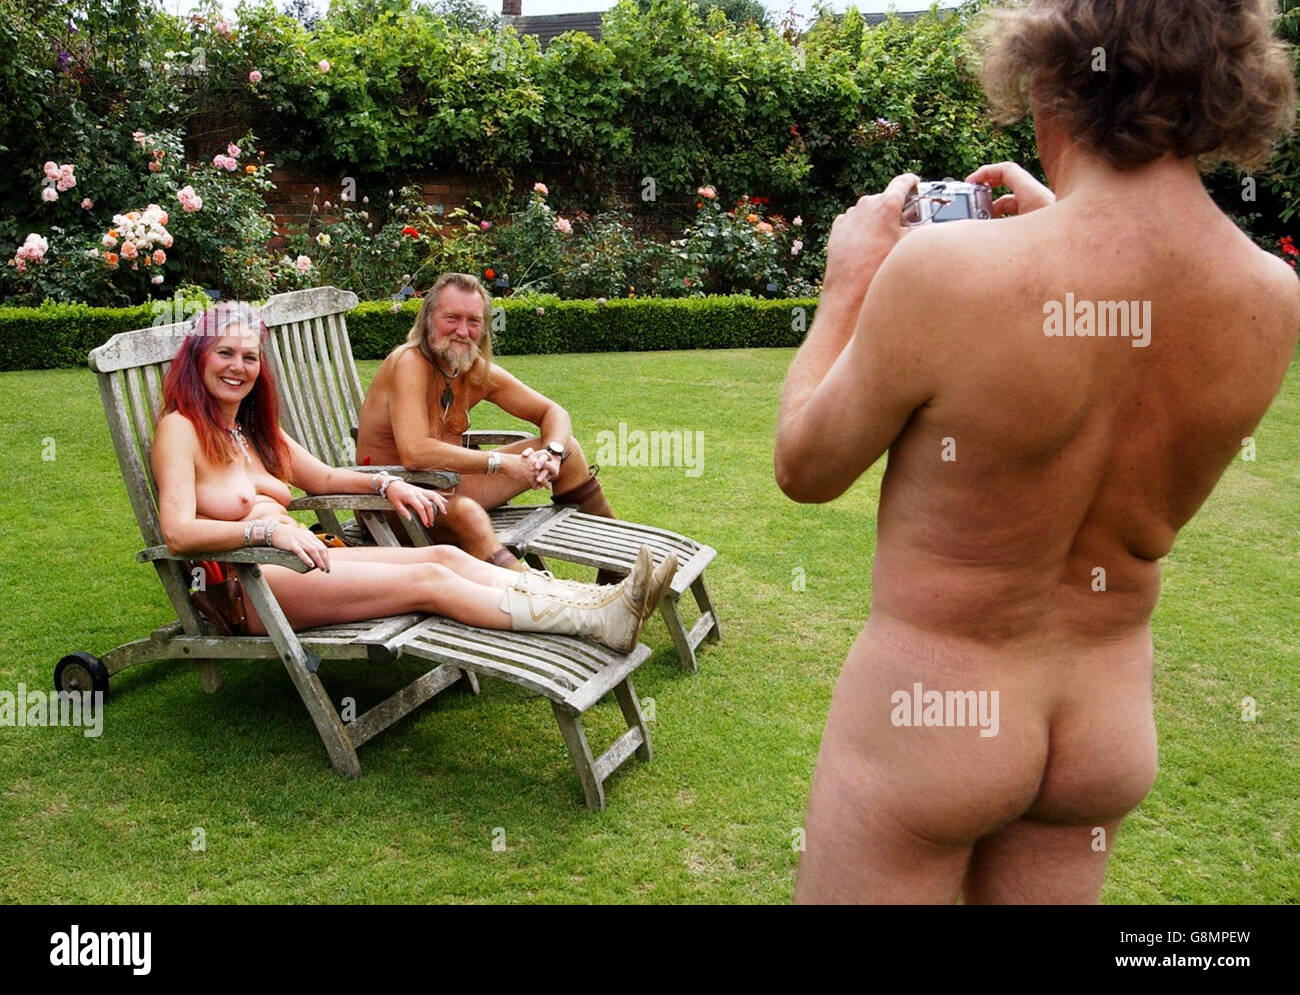 Clothes Optional Day - Abbey House Gardens - Stock Image